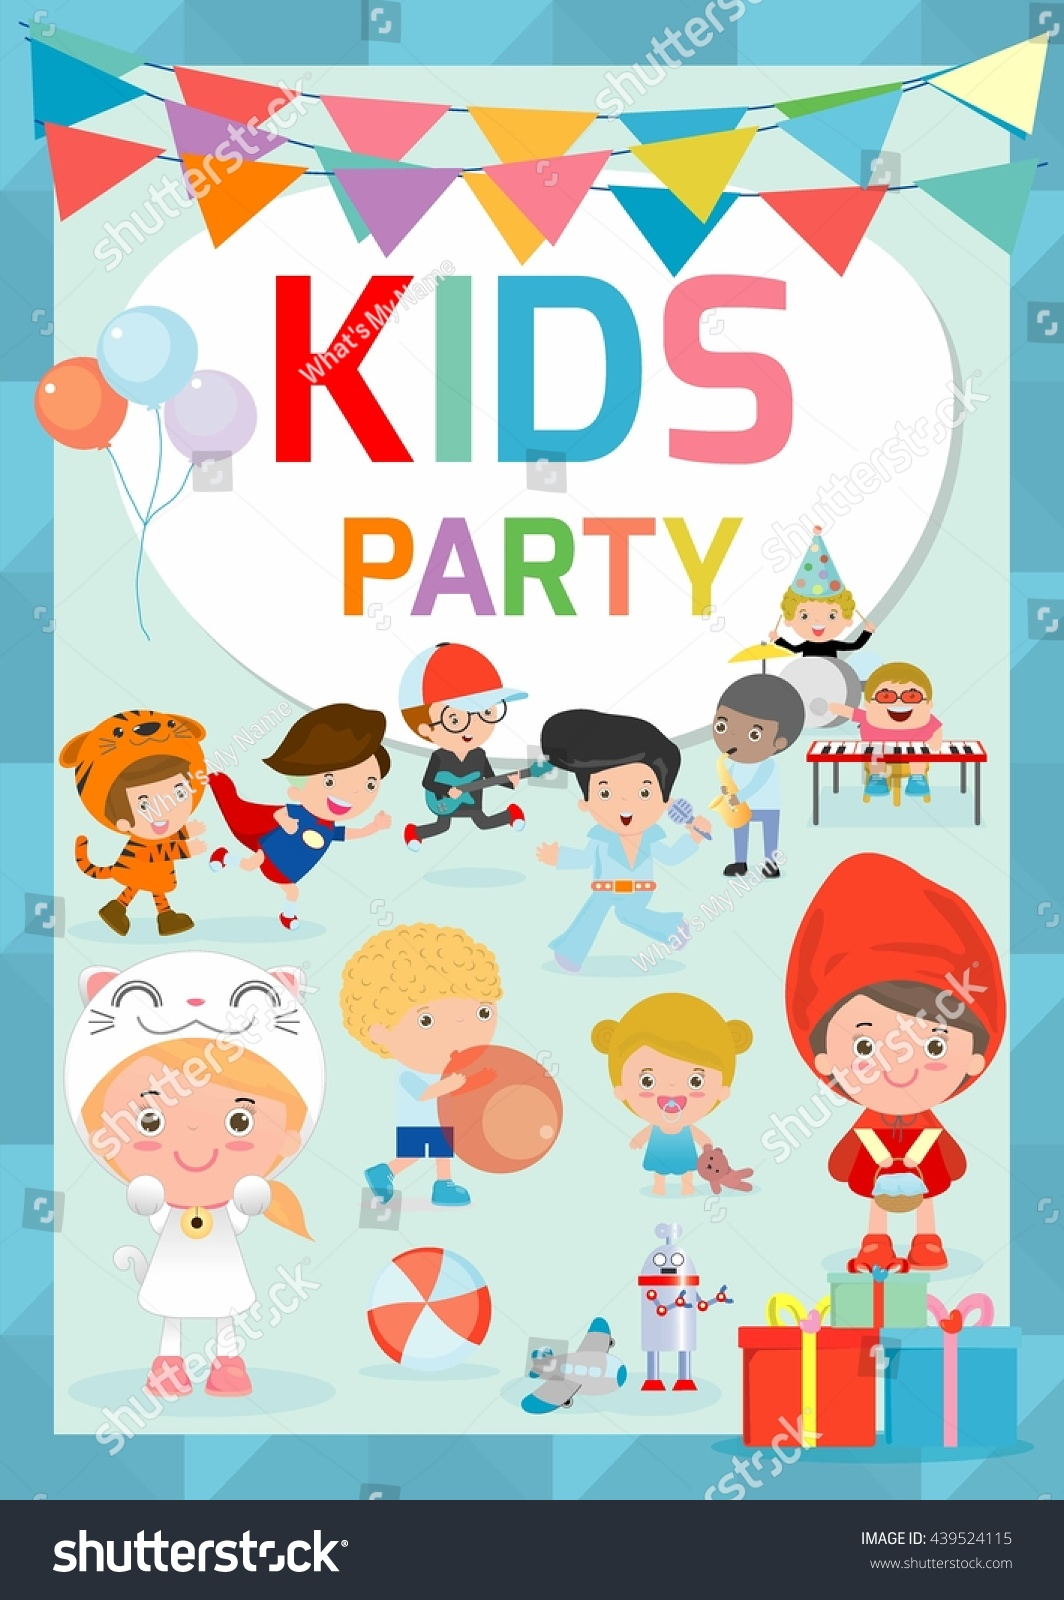 kids party design template children happy stock vector  kids party design template children happy party celebration flyer banner or pamphlet template